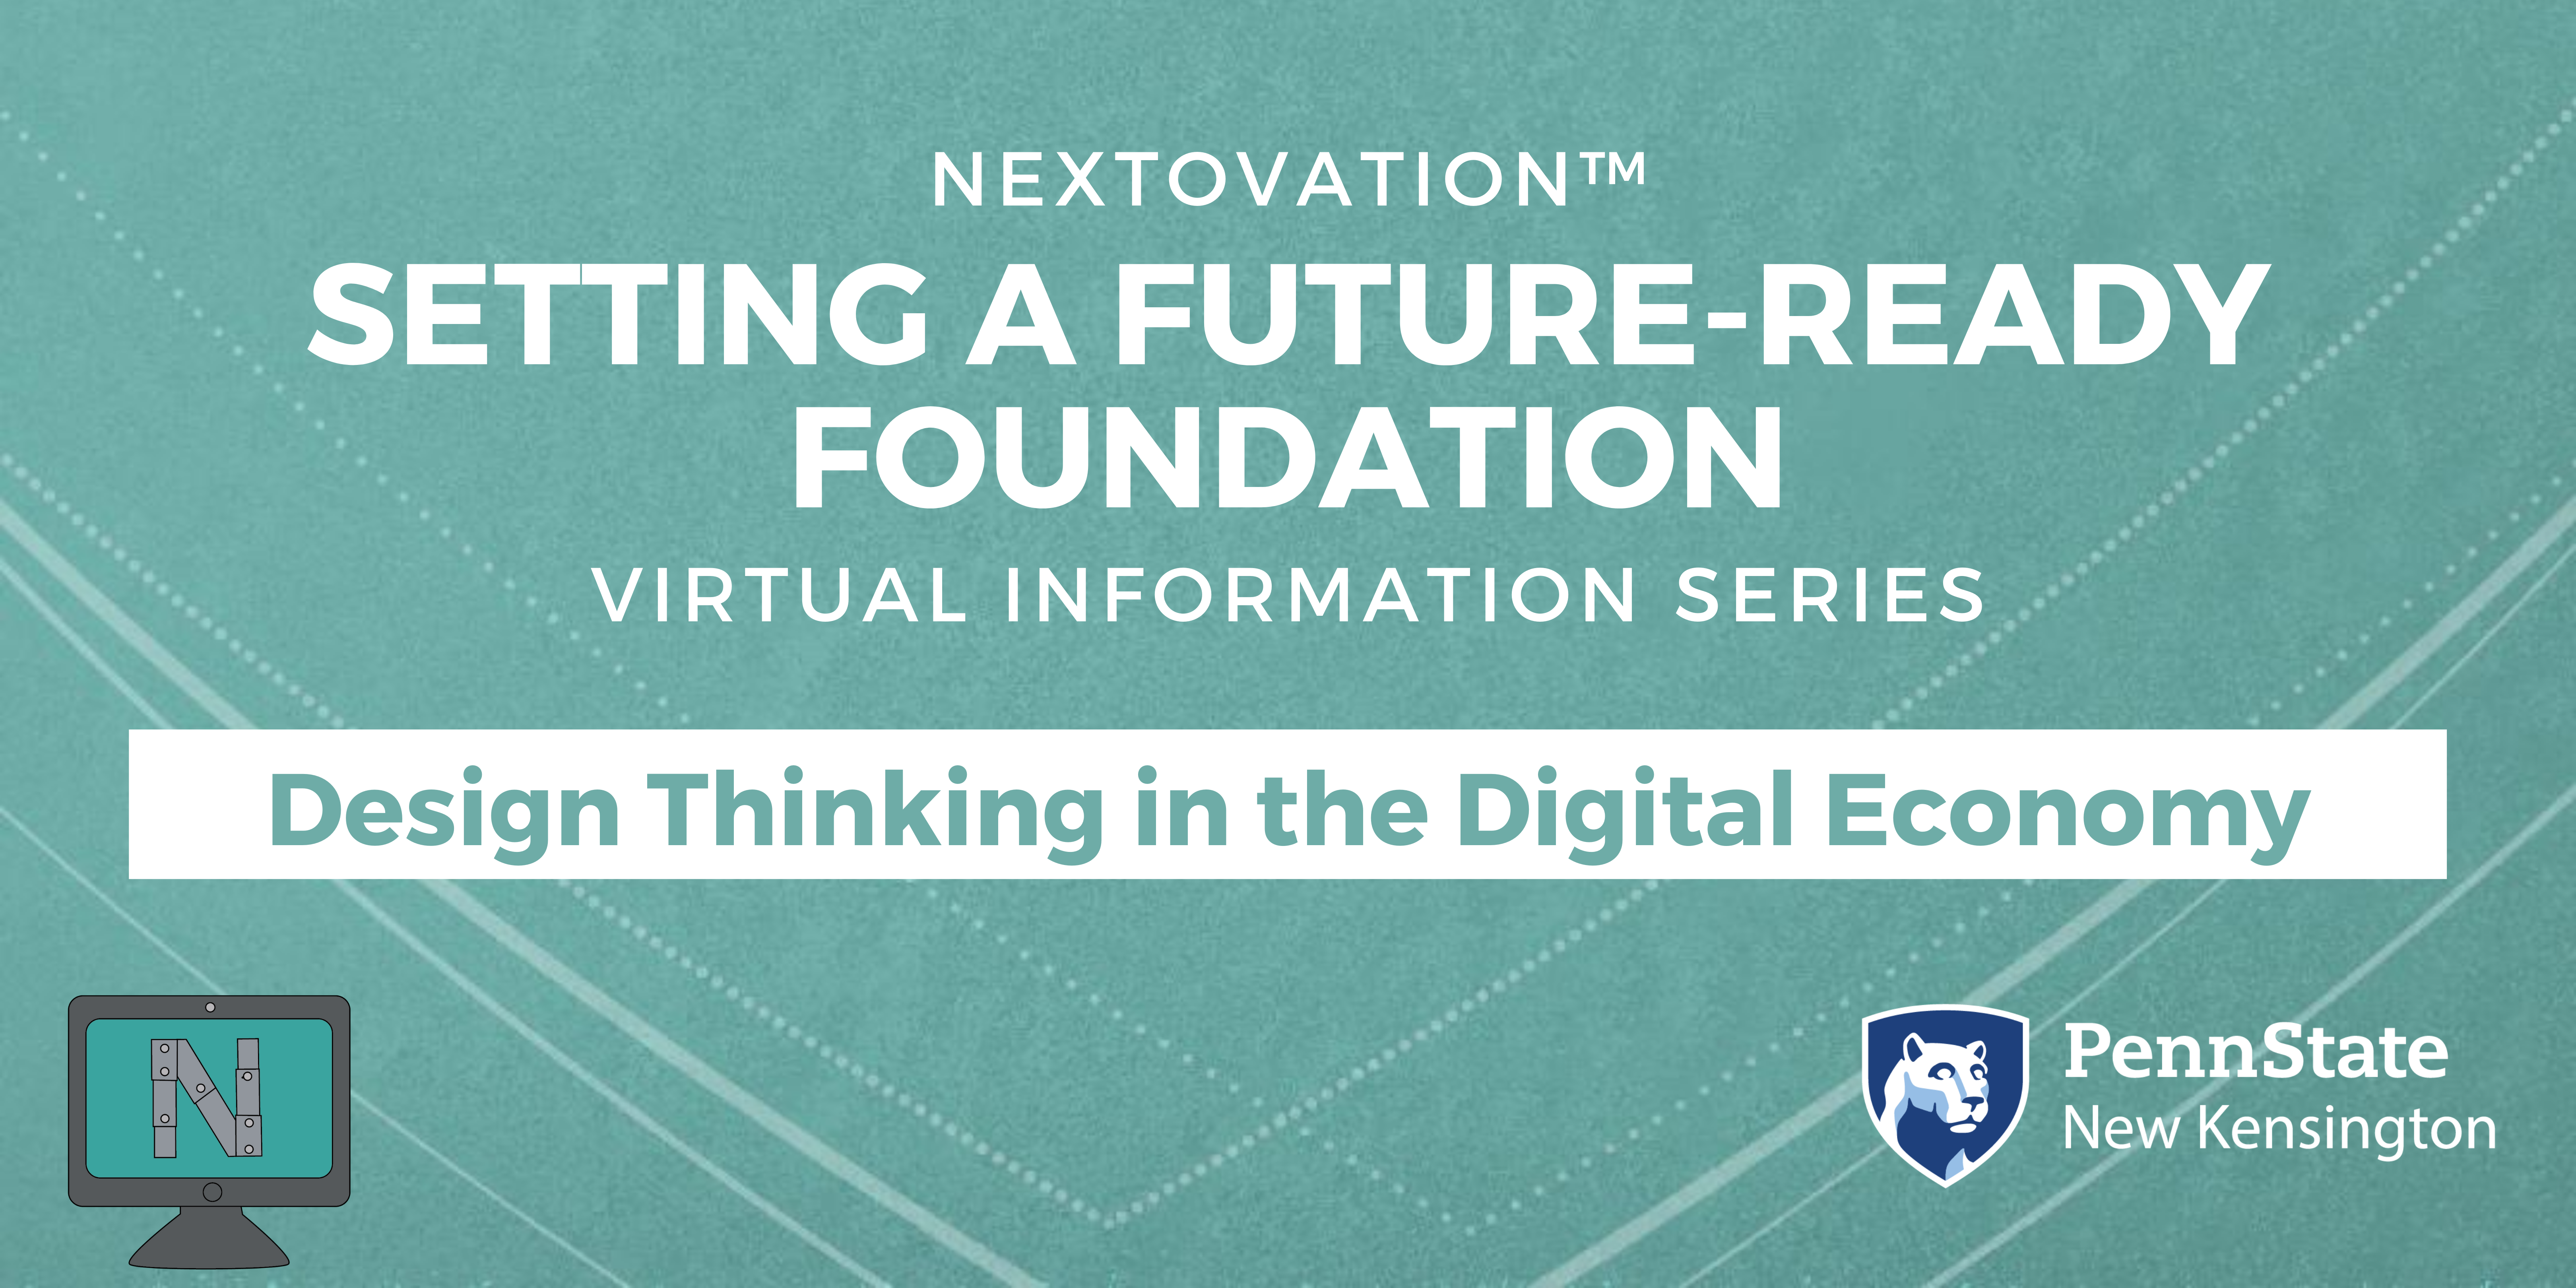 Webinar Title: Design Thinking in the Digital Economy